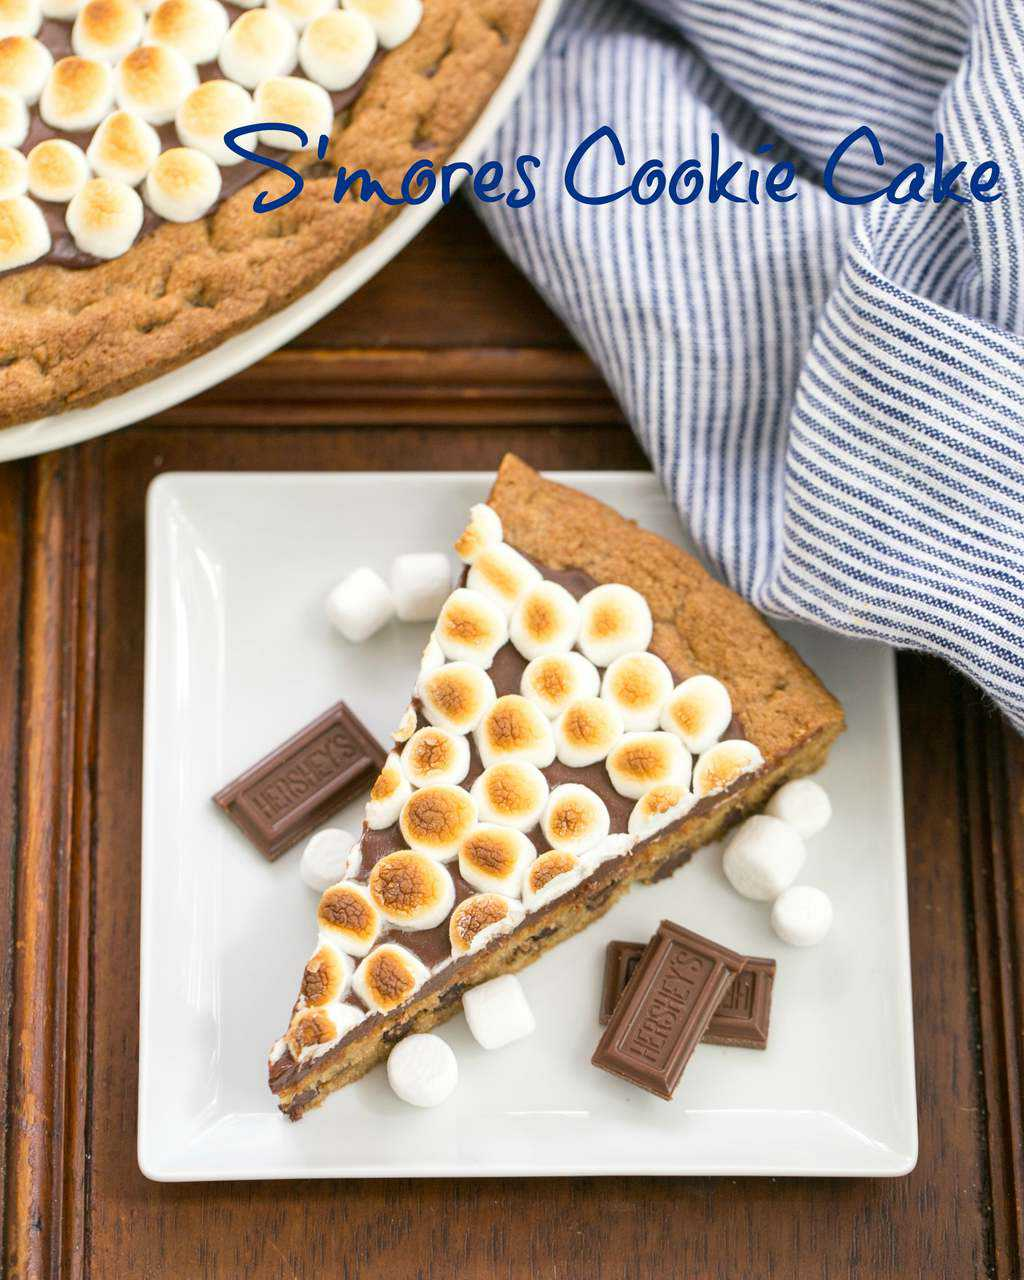 S'mores Cookie Cake - A tasty riff on the classic campfire treat! #smores #cookiecake #picnicdessert #summerdessert